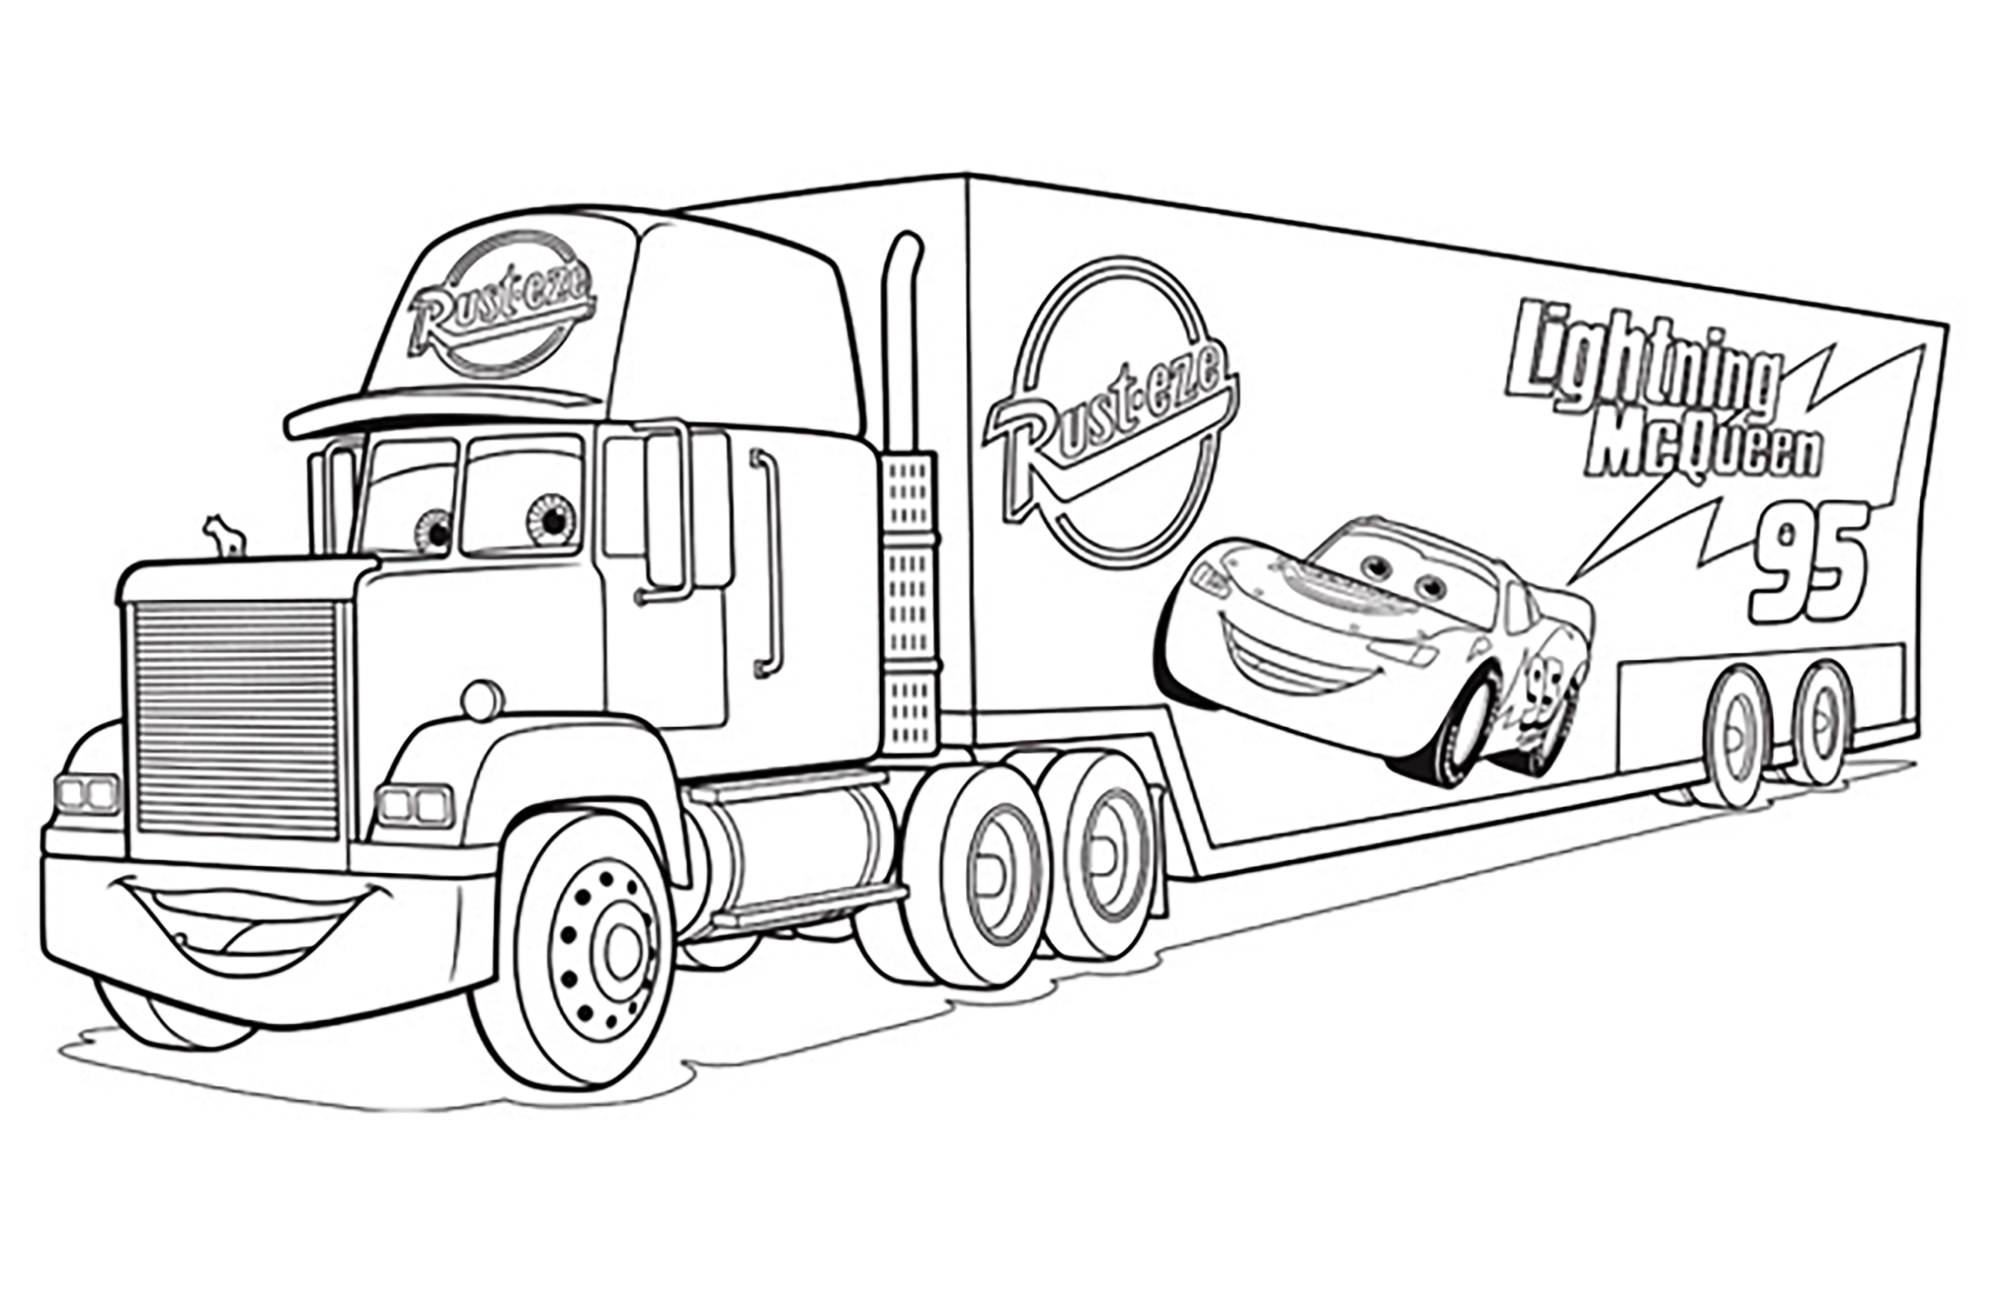 Cars 3 mack truck coloriage cars 3 coloriages pour enfants - Coloriage cars image ...